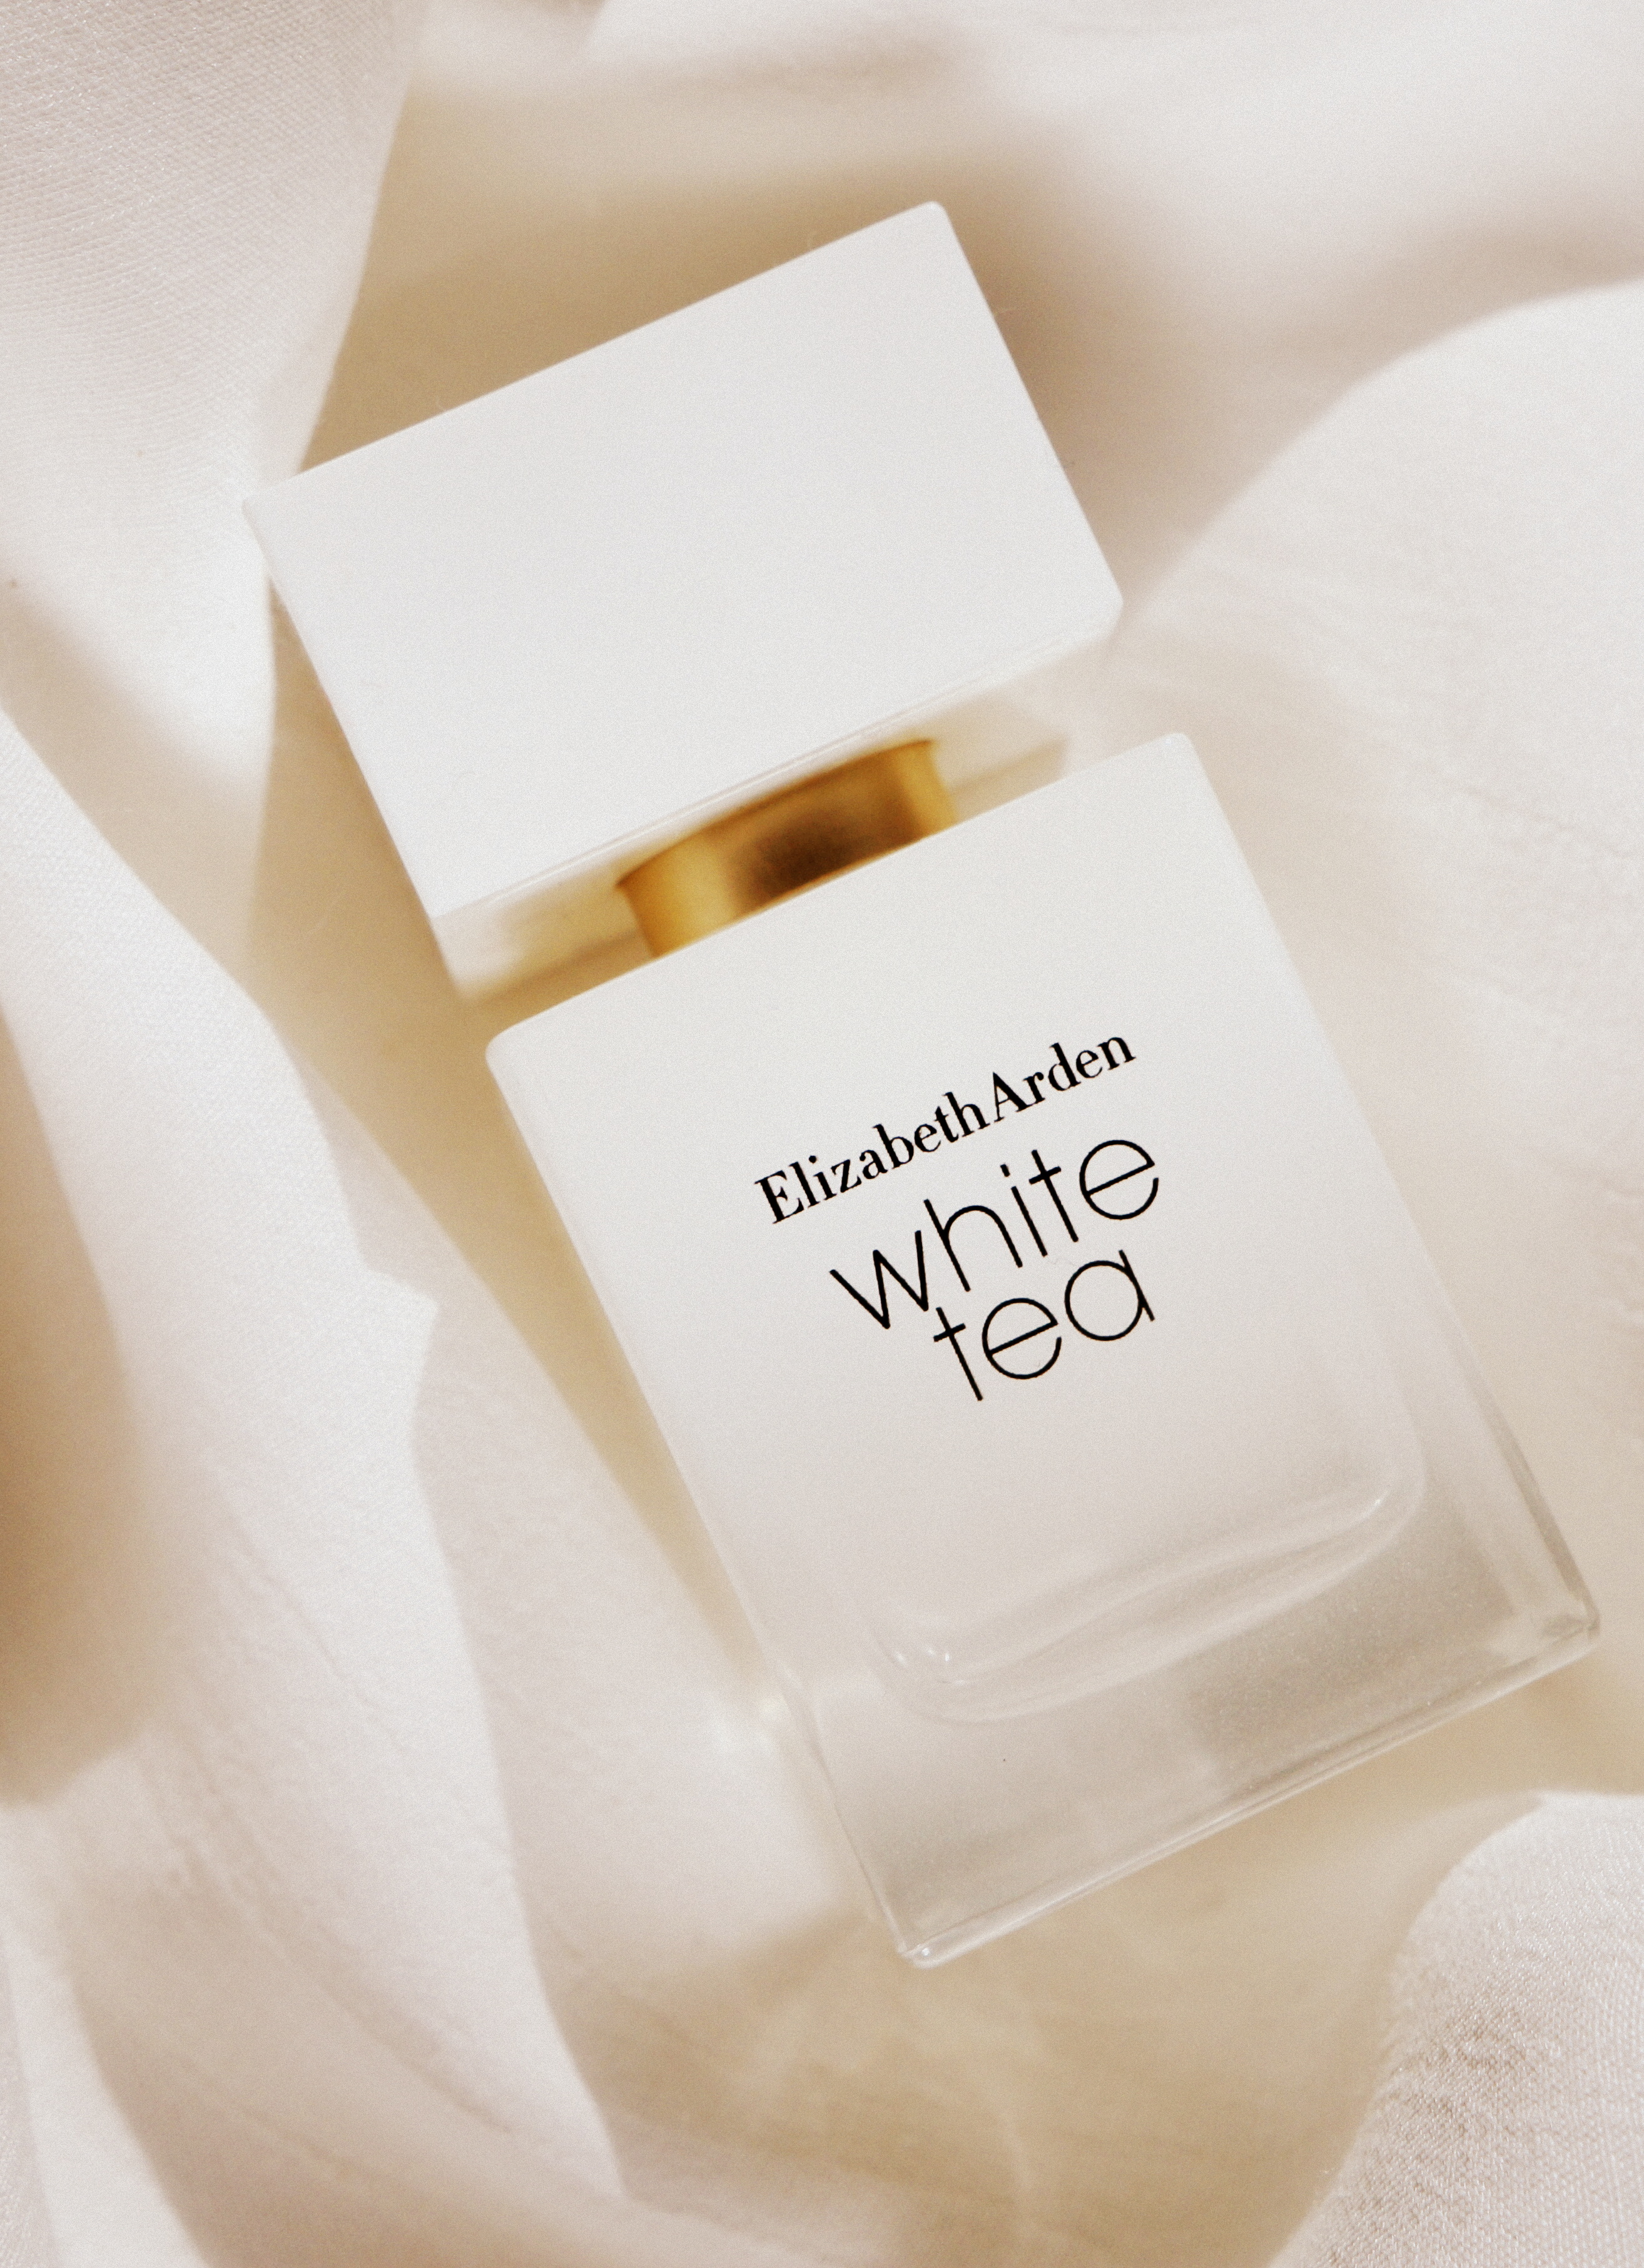 white-tea-elizabeth arden